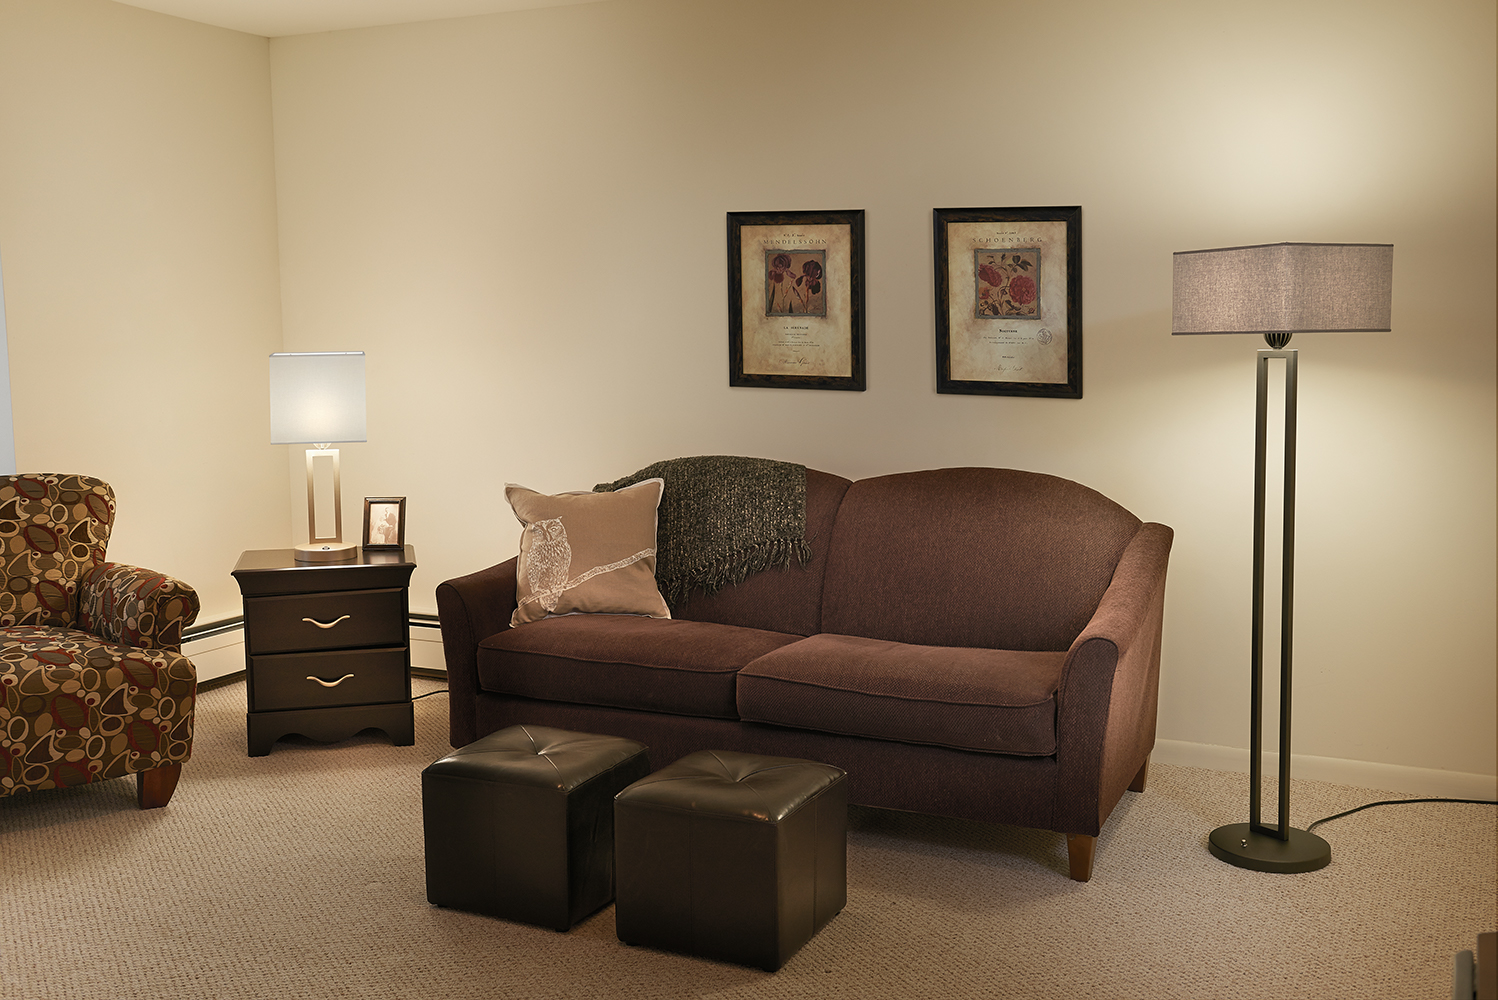 Allegro portable luminaires for senior living and multifamily design provide a soft, glowing light over a living room.